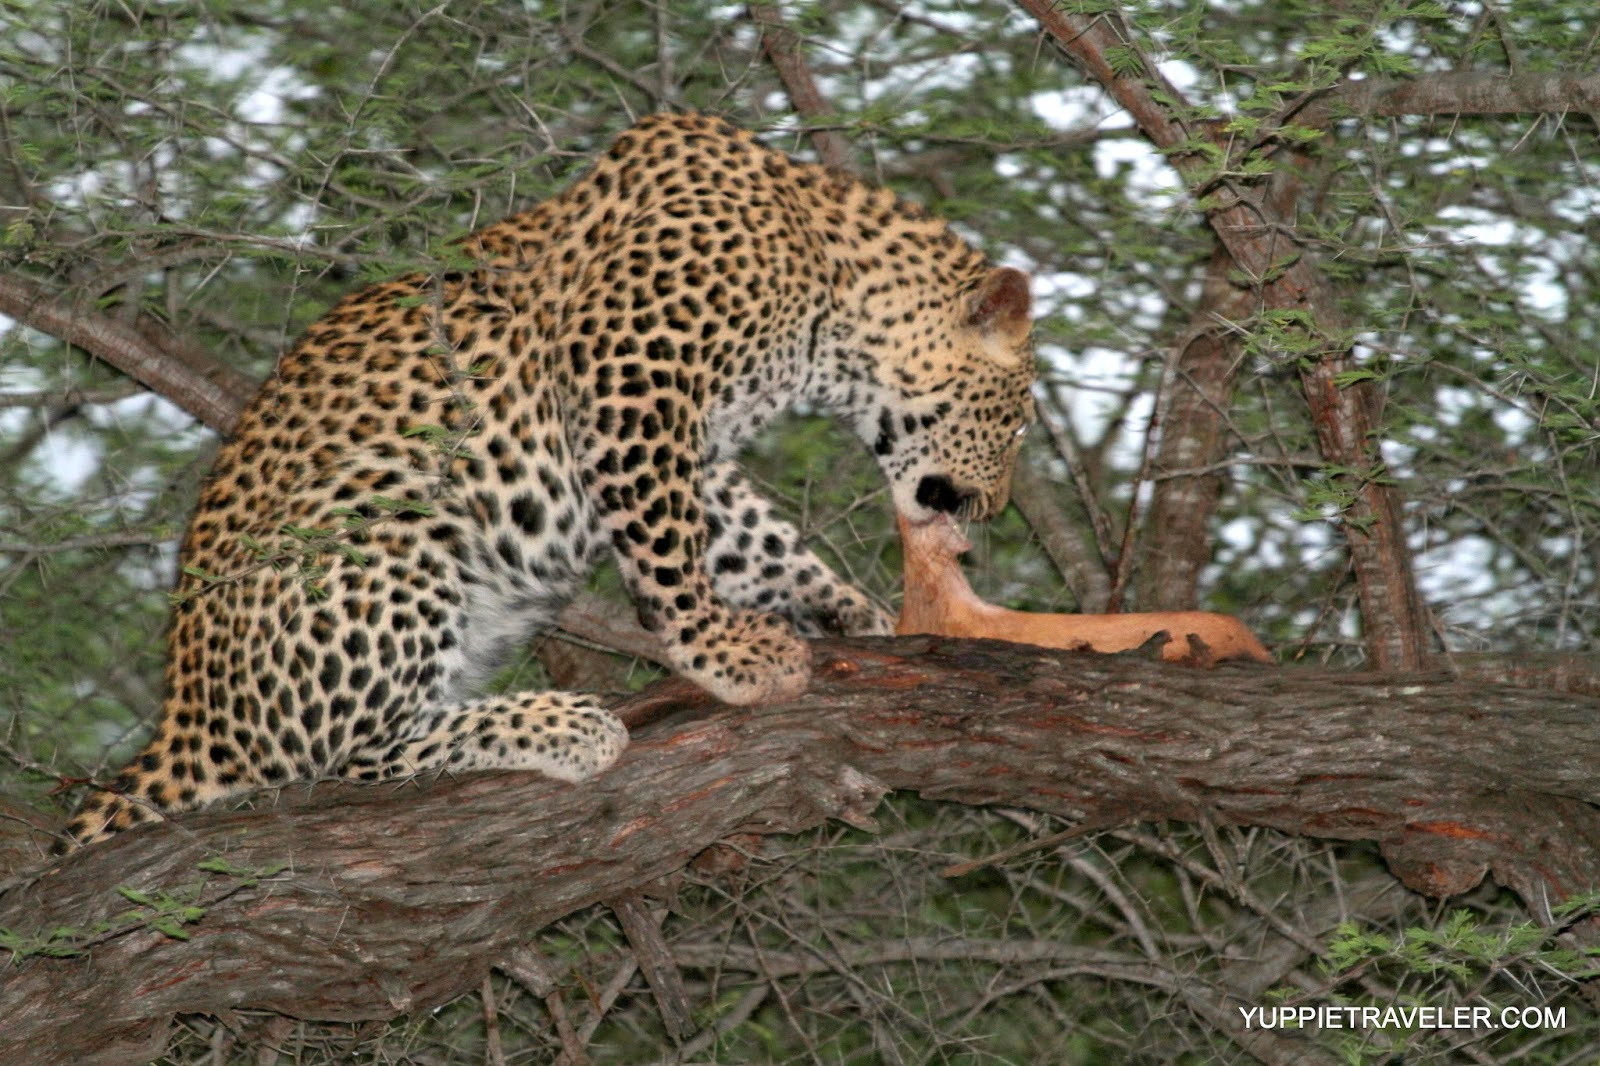 Leopards eating - photo#23